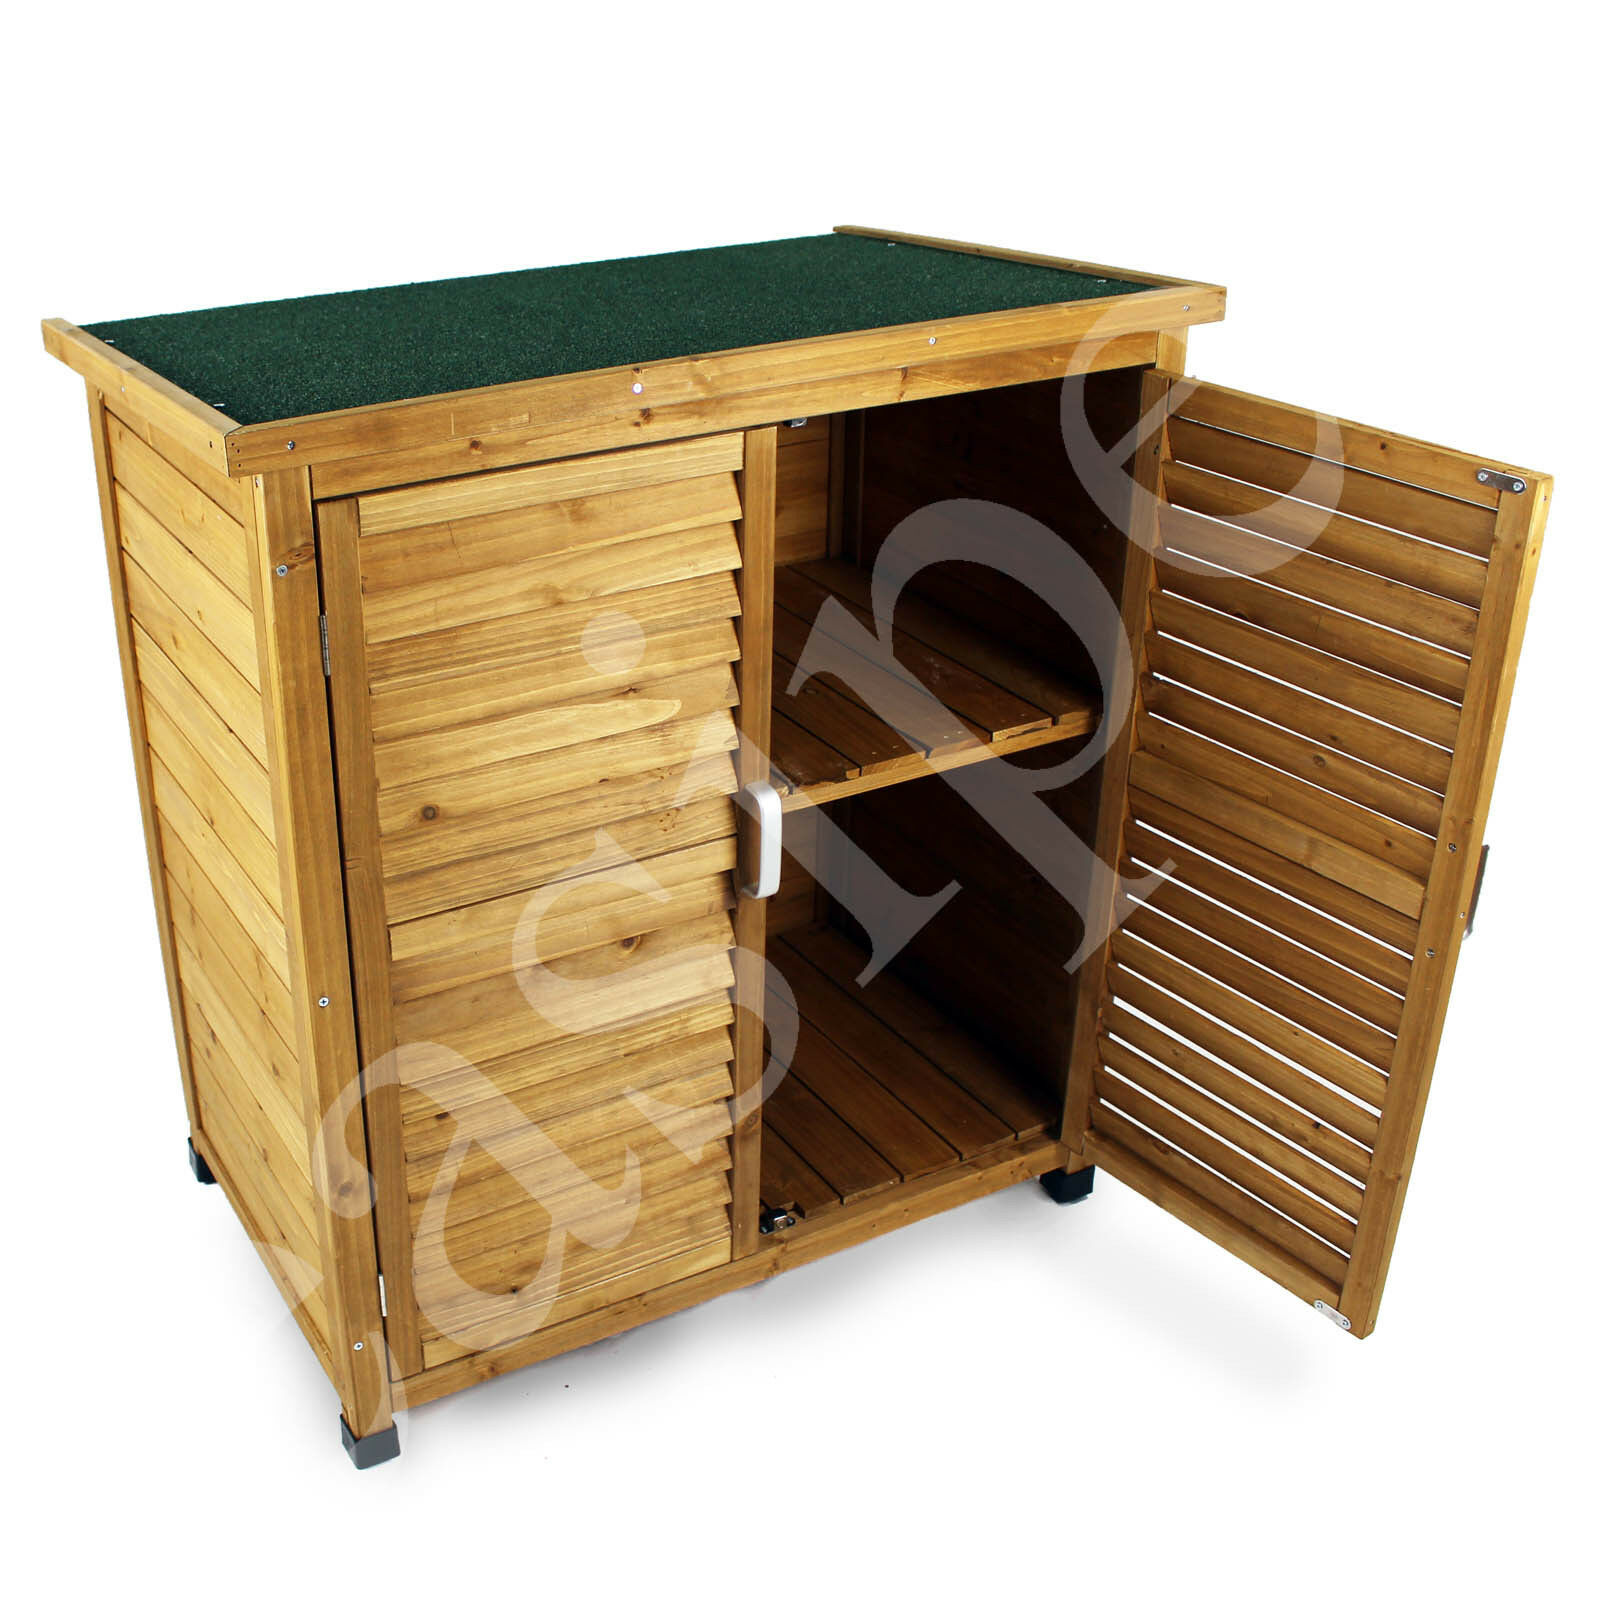 Wood garden shed tool storage lawn mower outdoor wooden for Wooden garden storage shed